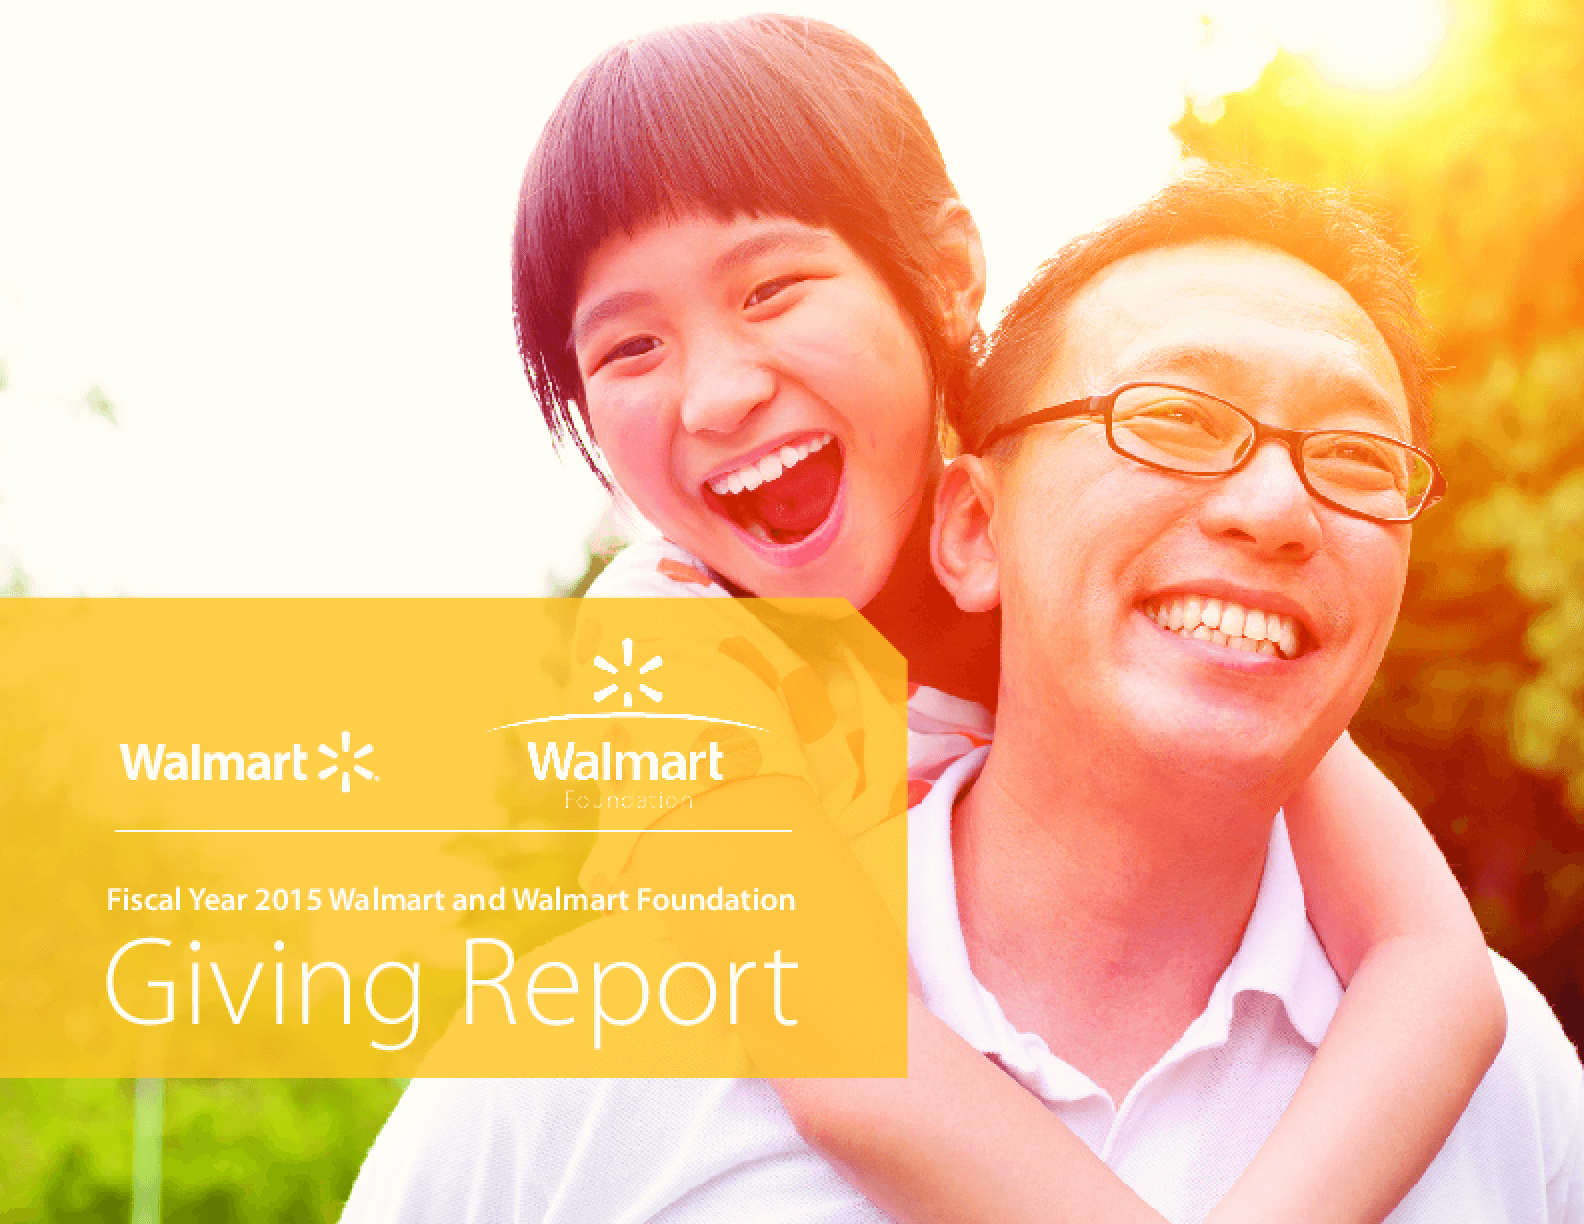 Fiscal Year 2015 Walmart and Walmart Foundation Giving Report